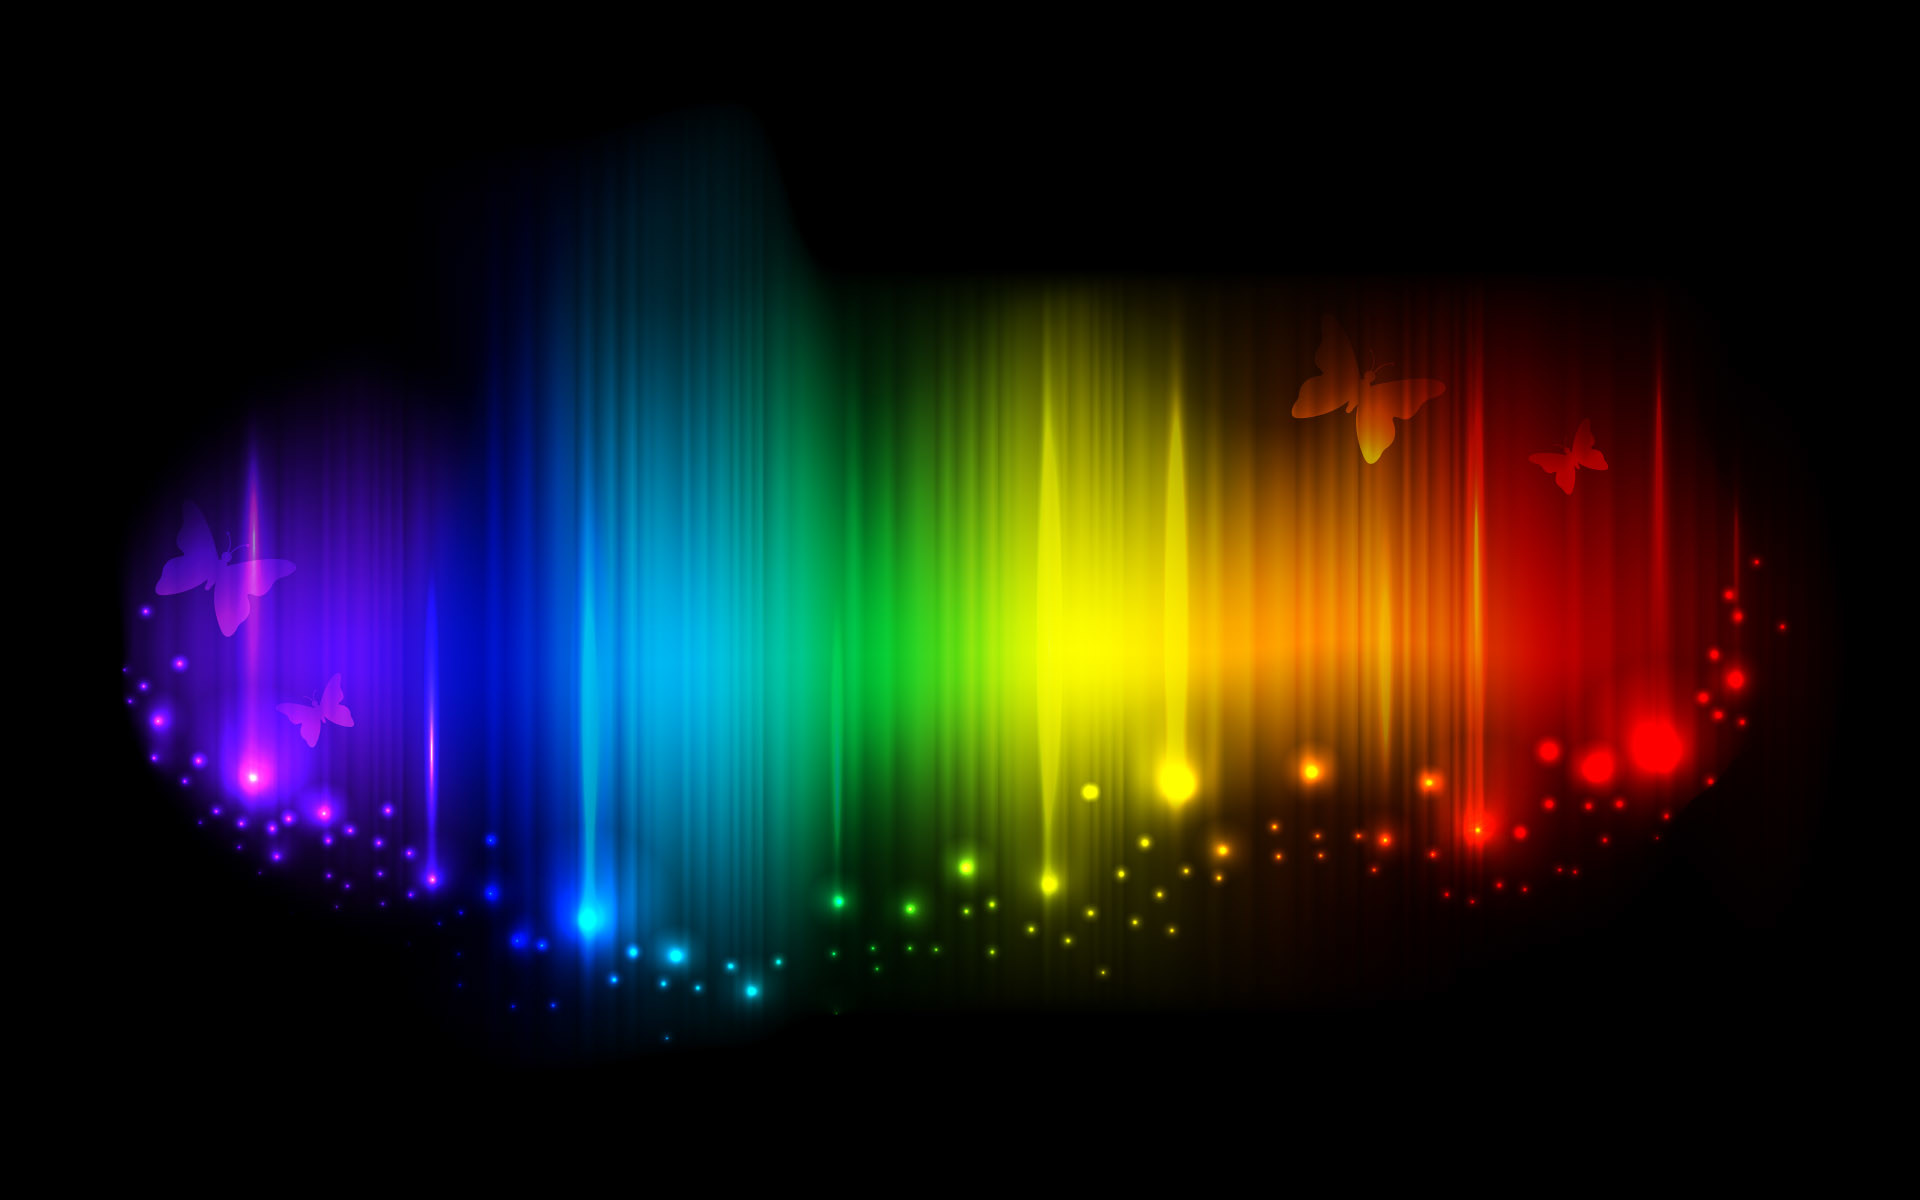 Abstract rainbow colors background ☆ Trivia fact: ROY G BIV (or ROYGBIV)